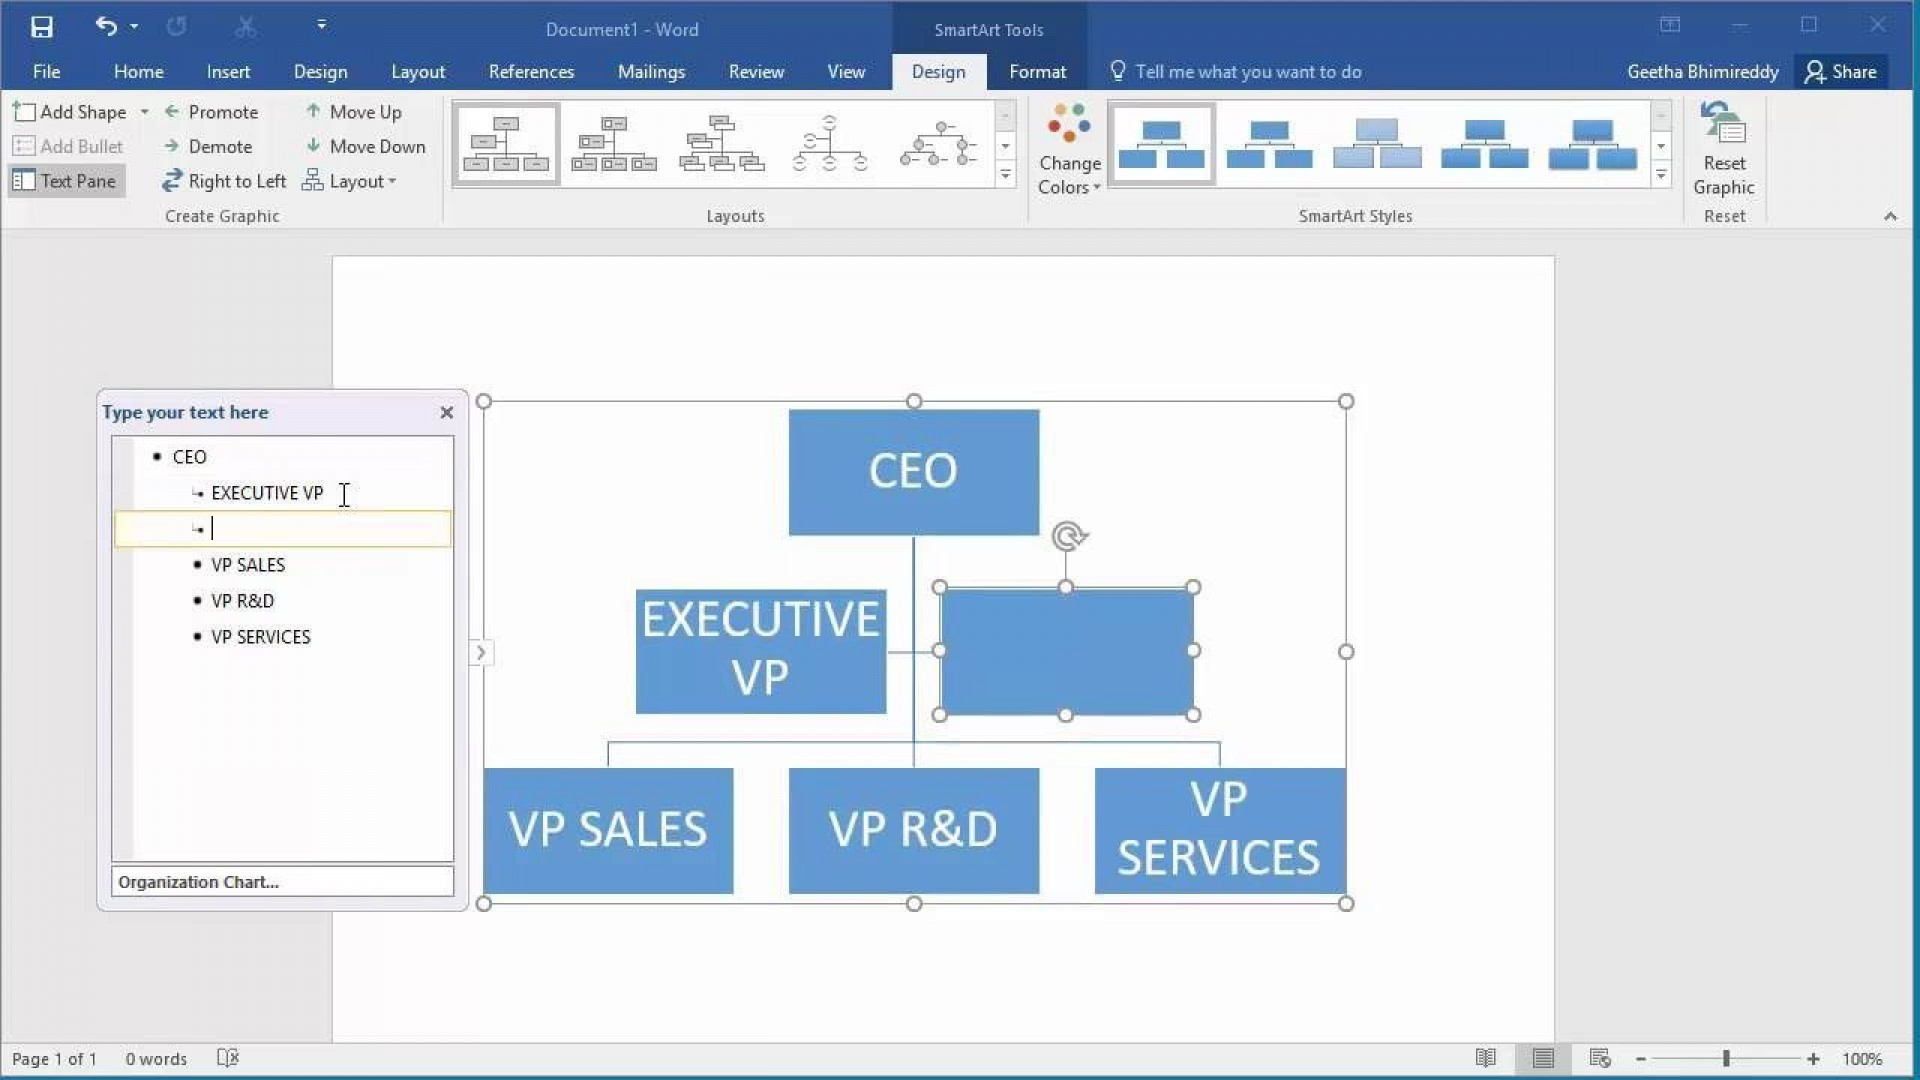 001 Awesome Organization Chart Template Word 2013 Highest Clarity  Organizational Free In Microsoft1920